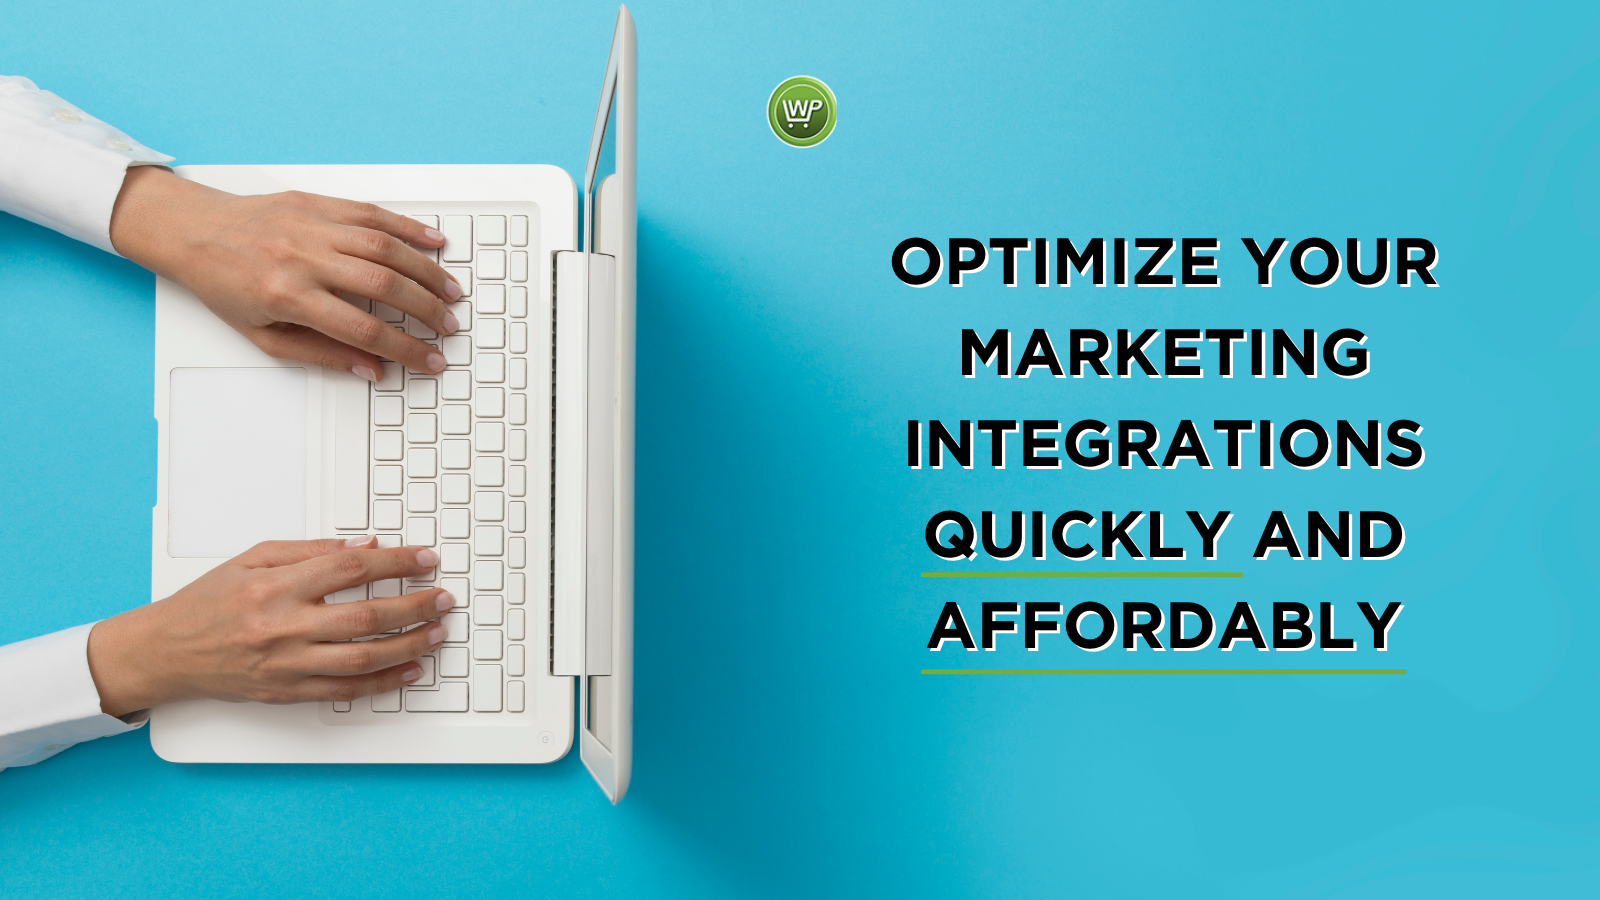 Marketing Integrations that are quick and affordable